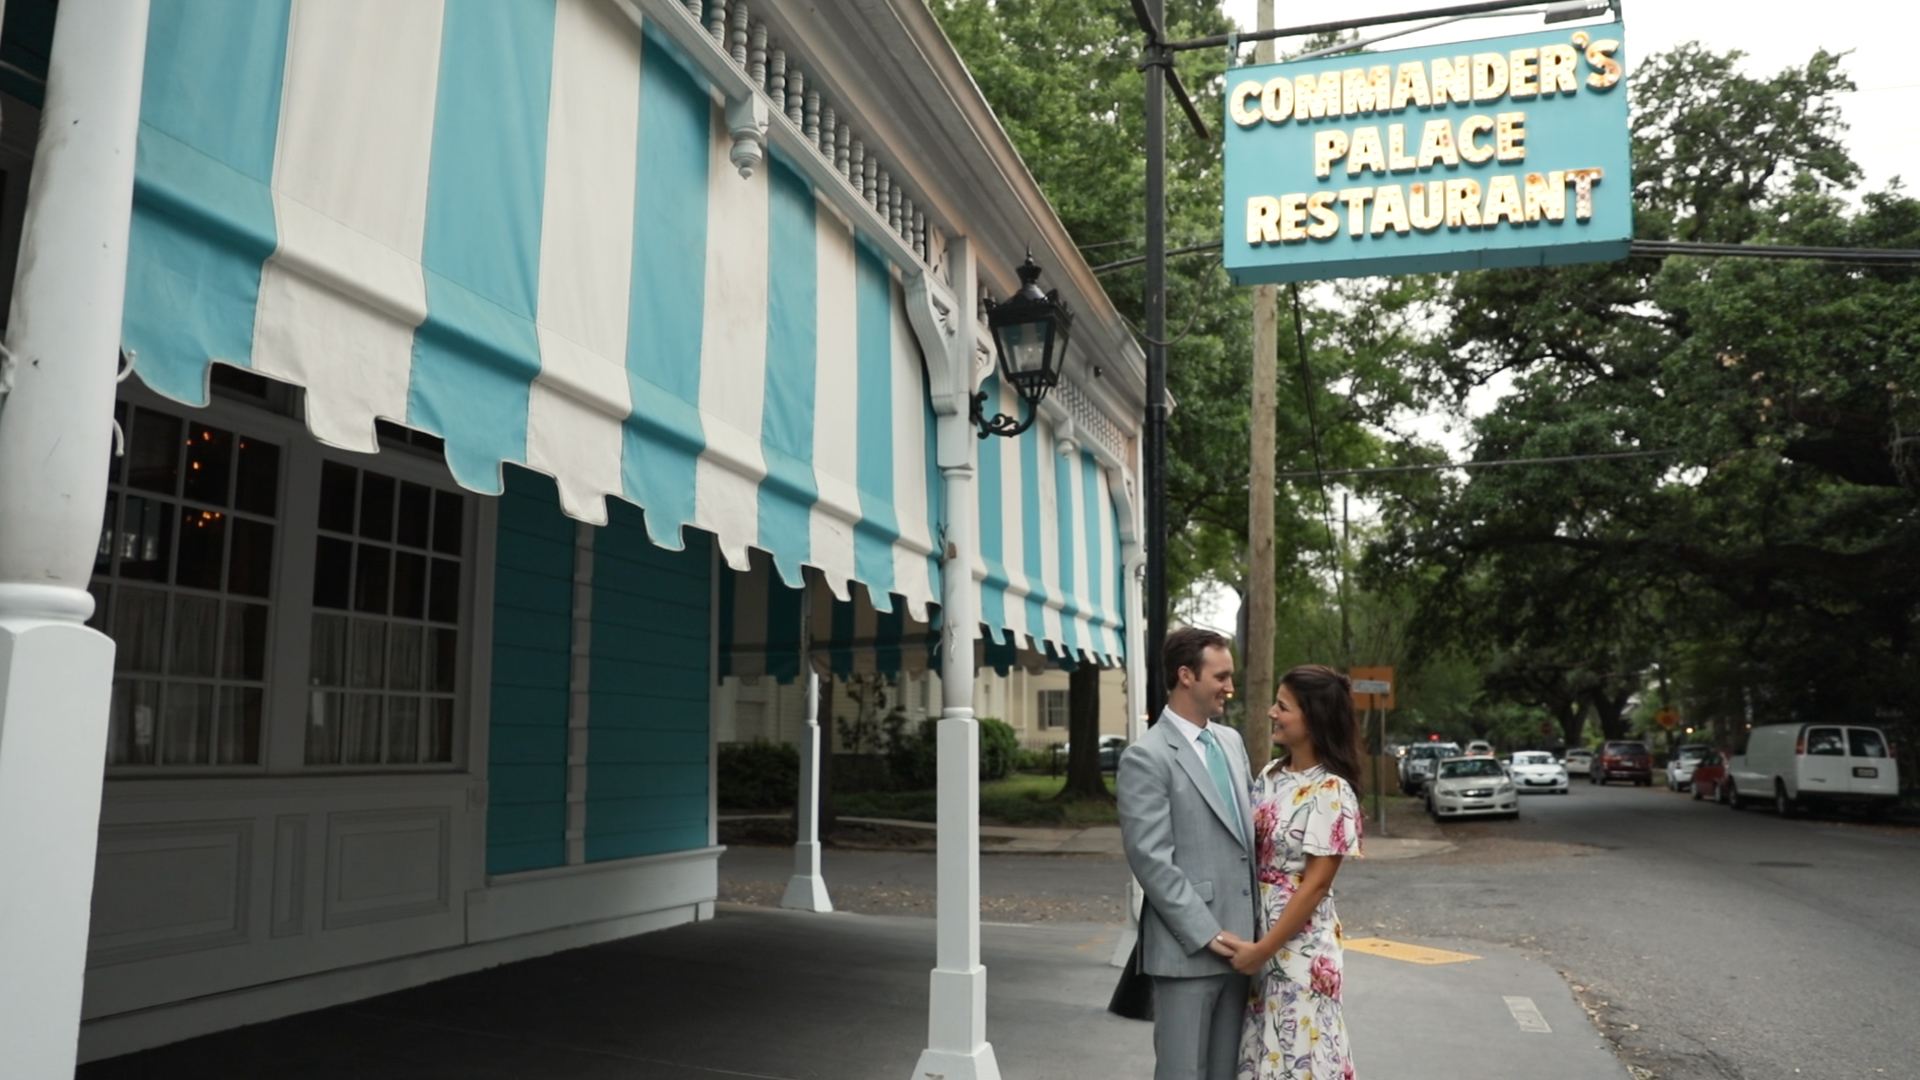 New Orleans Wedding Video_Sibyl and Charles_Commanders Palace Rehearsal Dinner